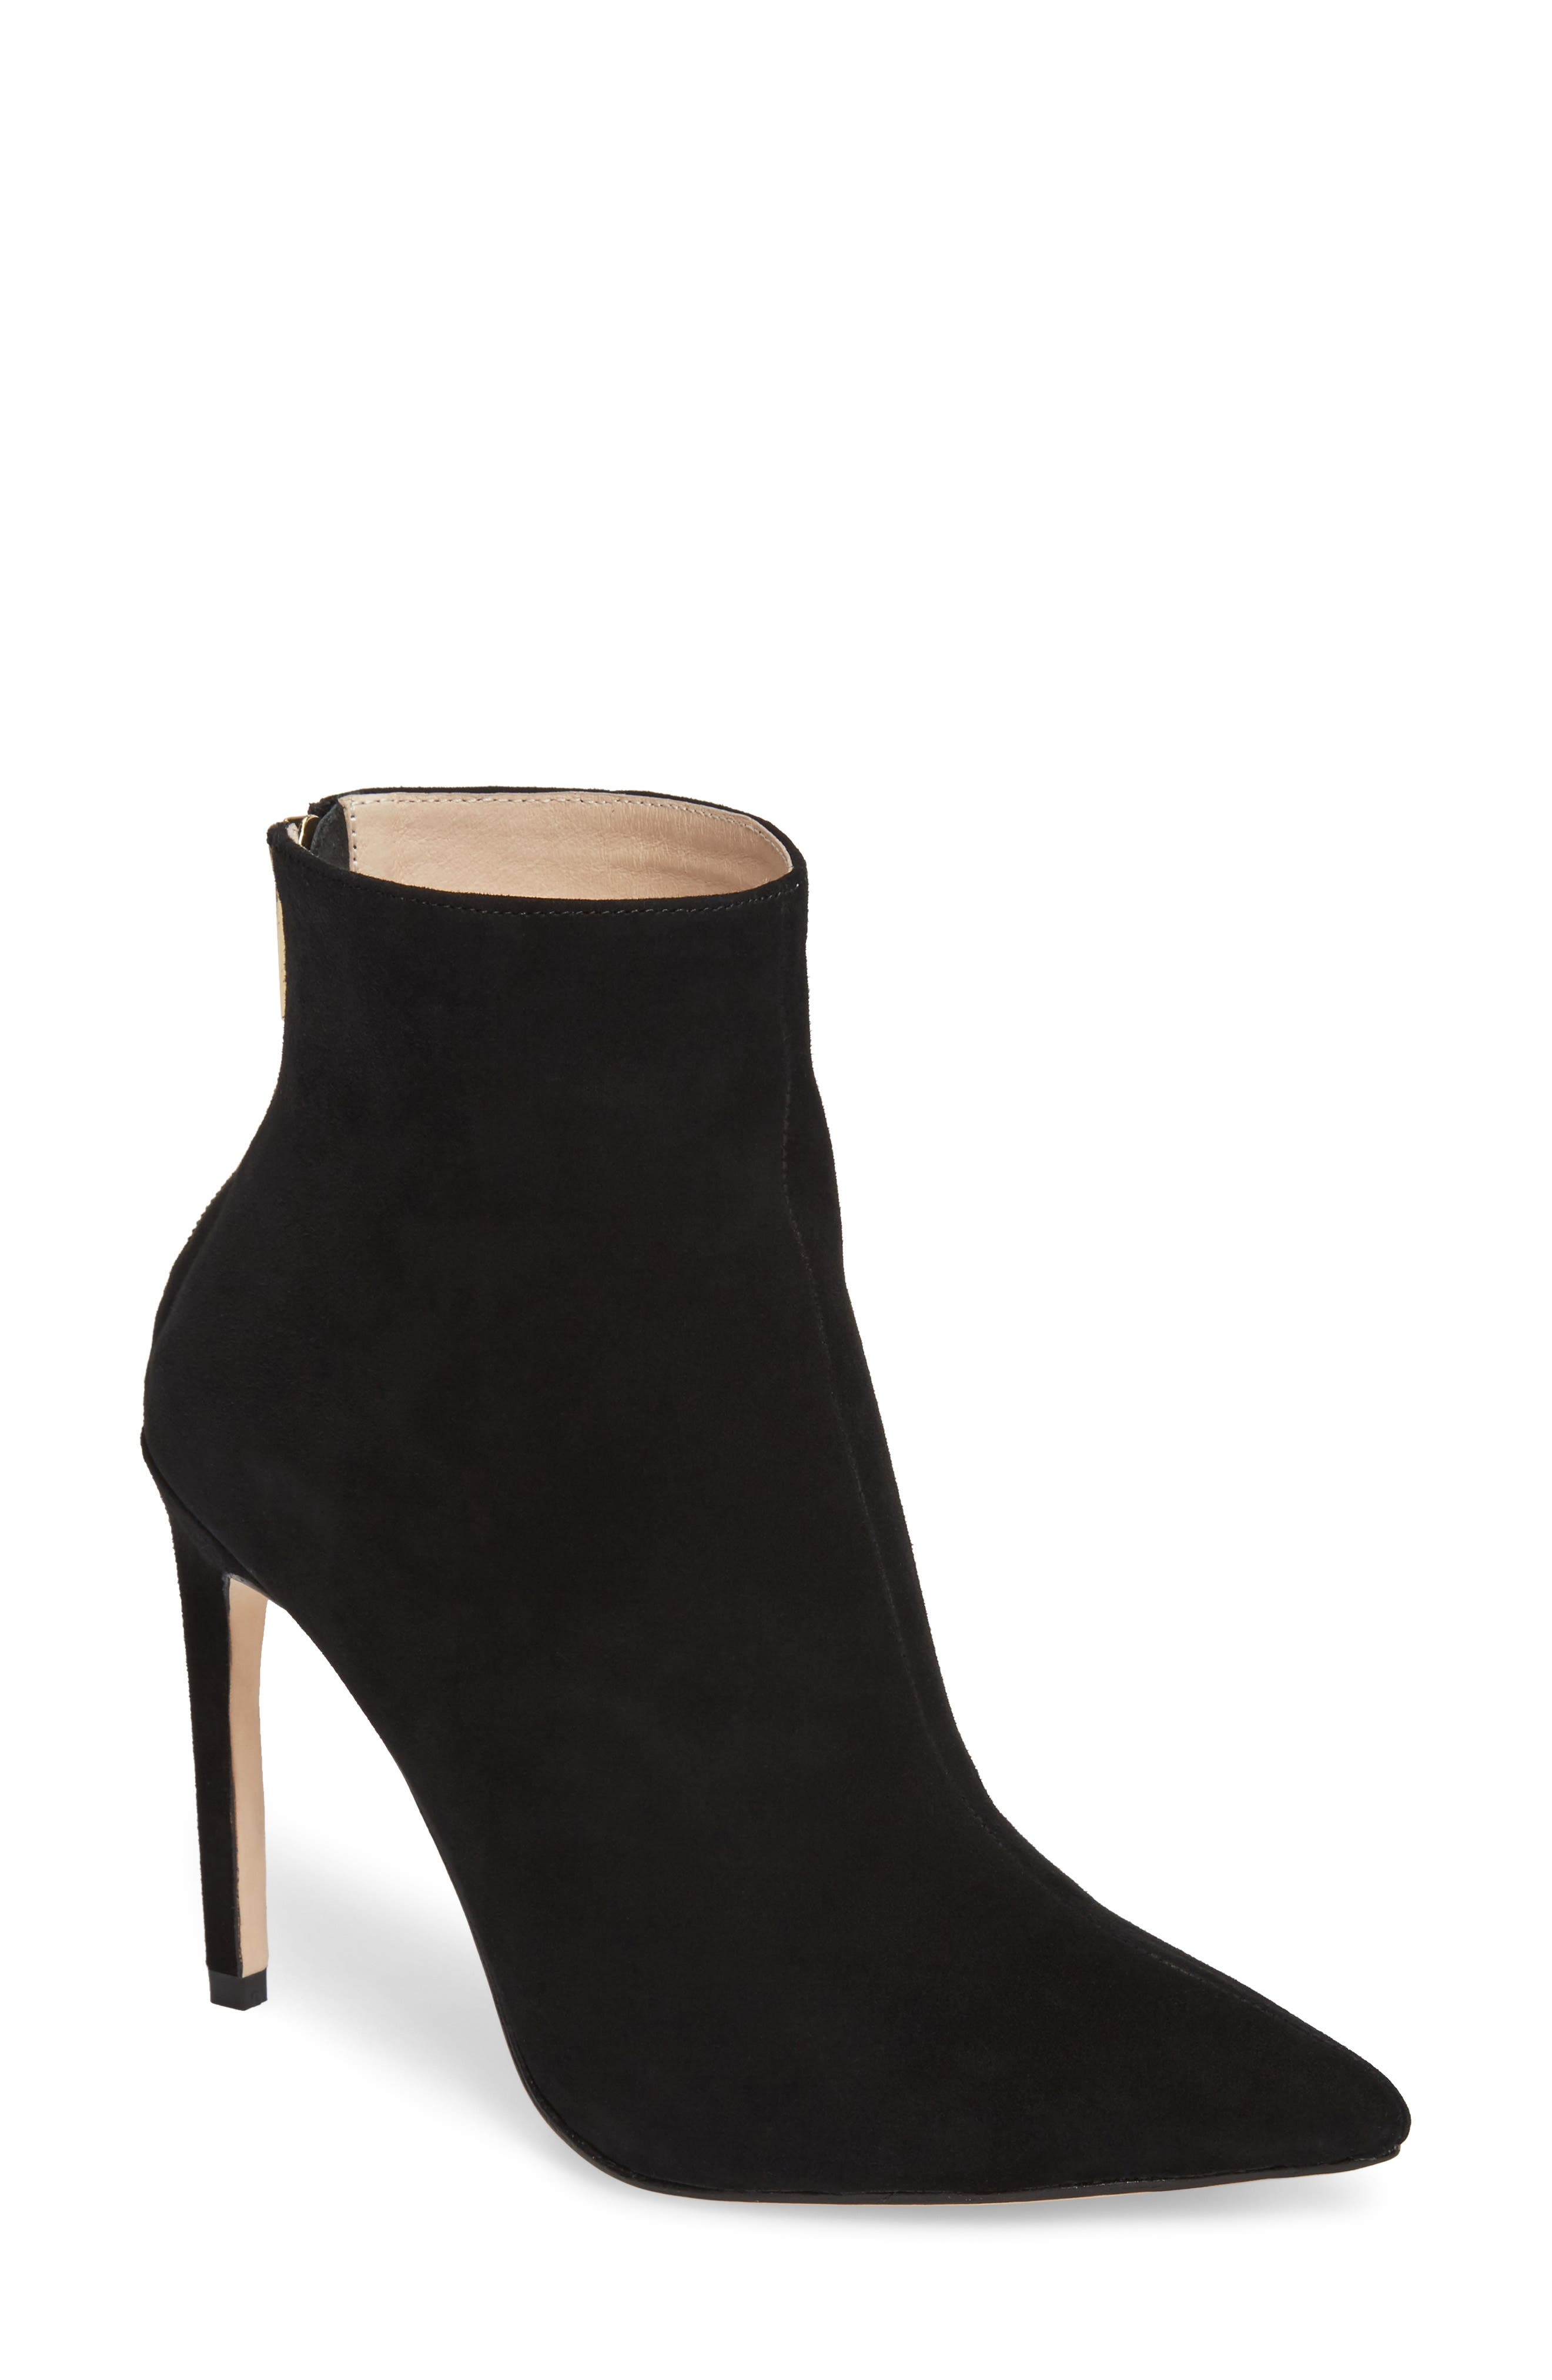 Tati Pointy Toe Bootie,                             Main thumbnail 1, color,                             Black Suede